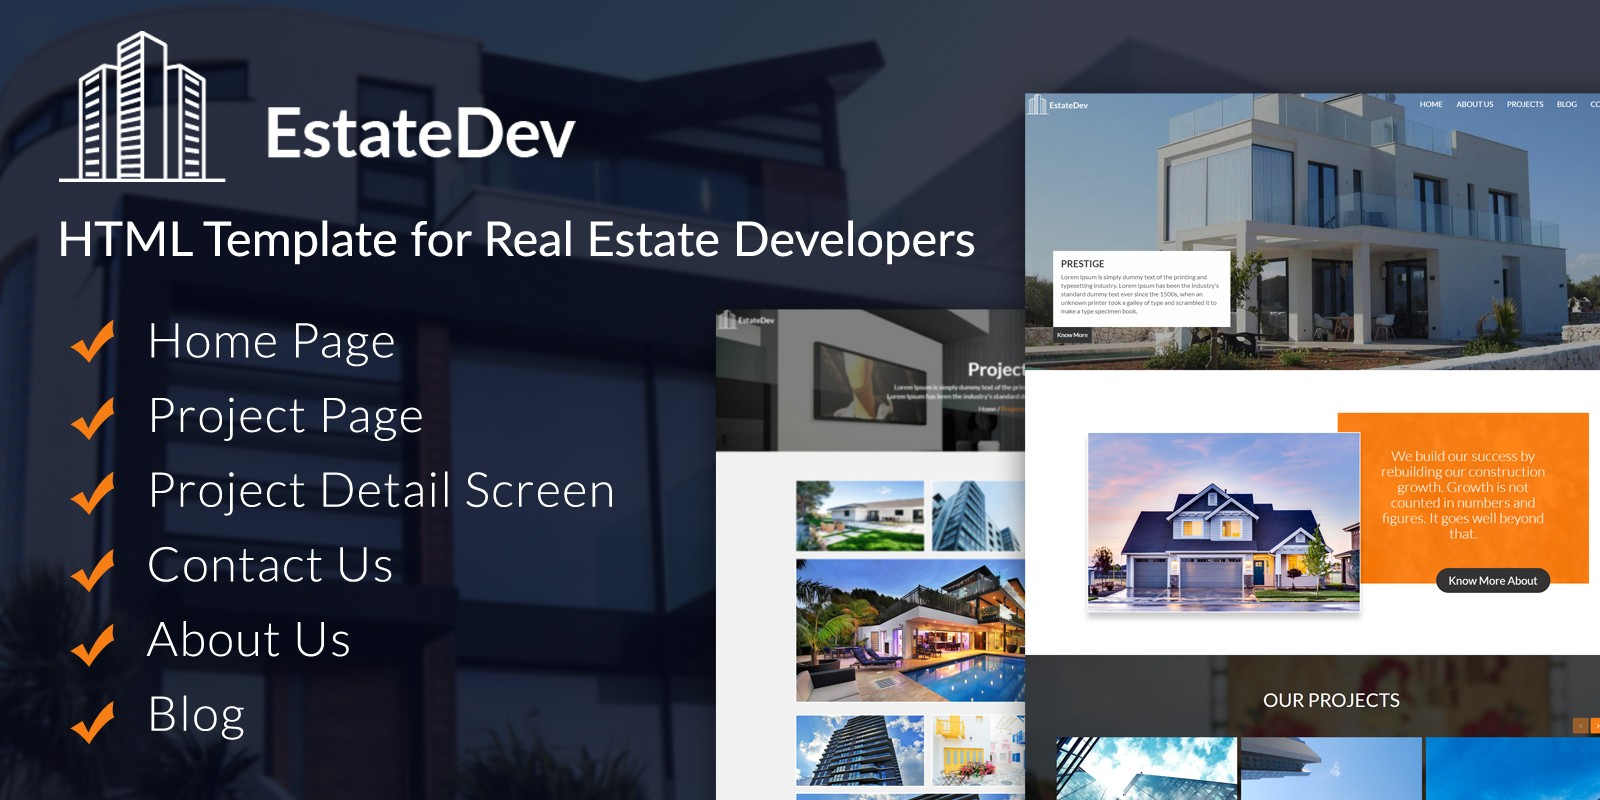 EstateDev - HTML Template for Real Estate | Codester on maryland logo design, realtor logo design, housing works logo design, non-profit organizations logo design, home inspection logo design, publishing house logo design, property management logo design, search logo design, apartment logo design, building logo design, key logo design,